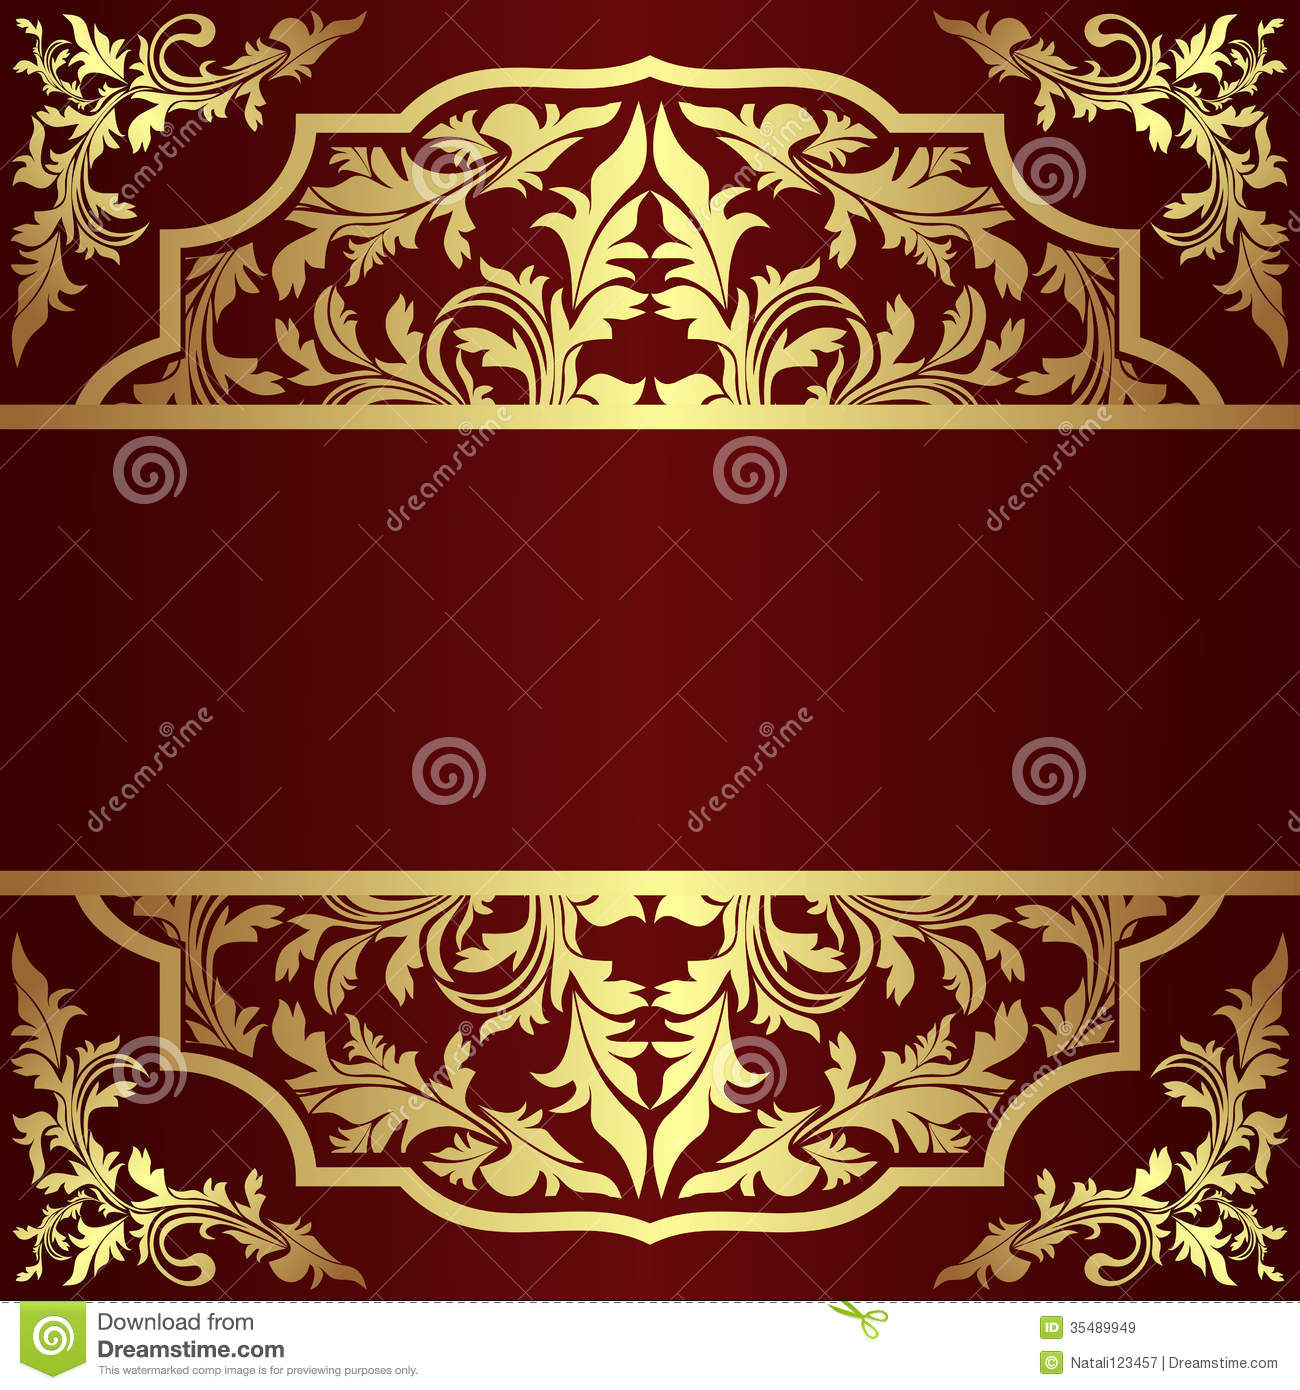 Invitation Design Template With Golden Royal Elements